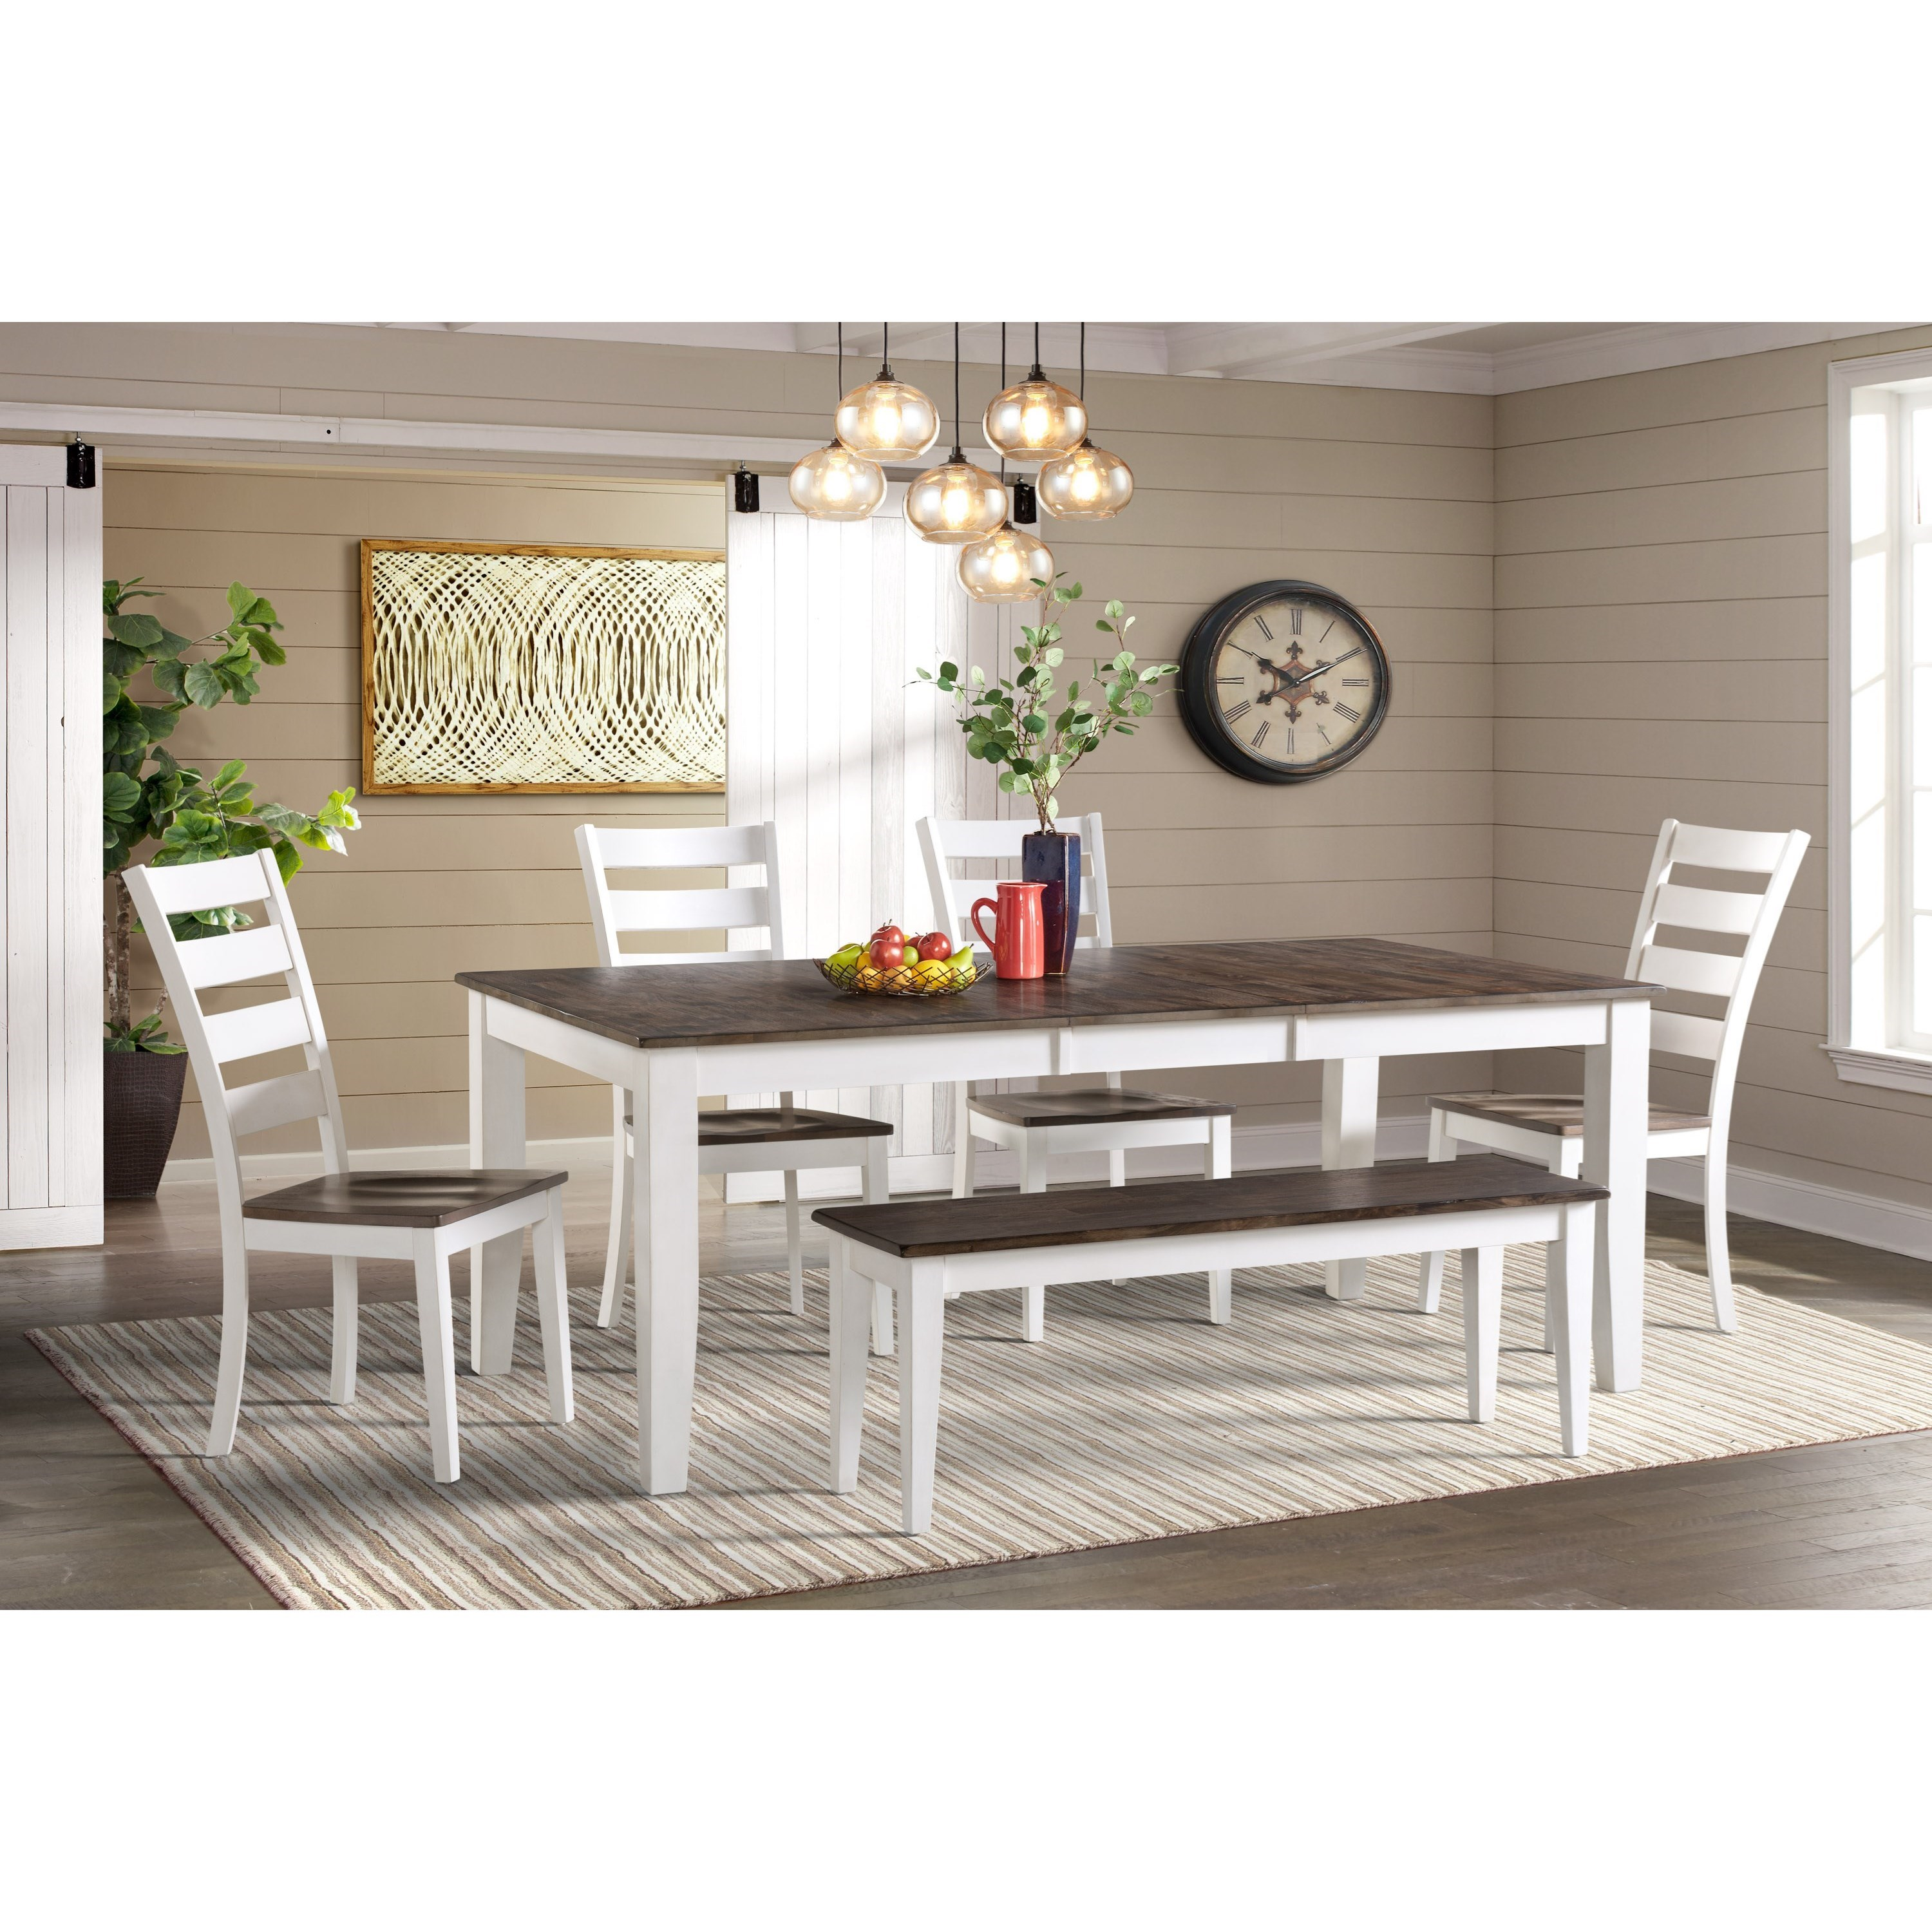 Kona 6-Piece Dining Room Set by Intercon at Dinette Depot